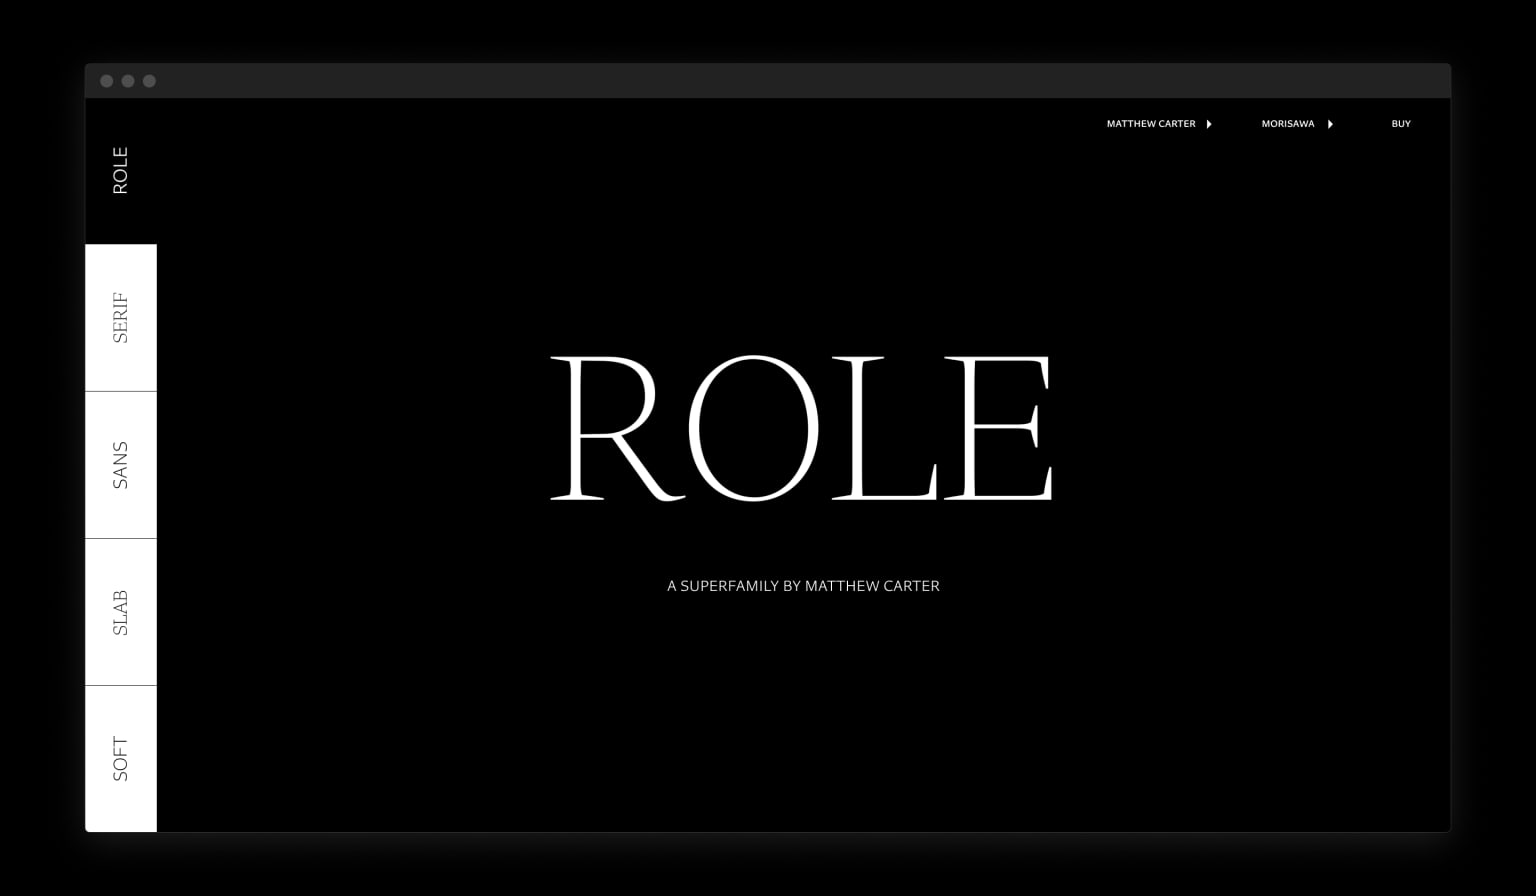 Role Superfamily Website